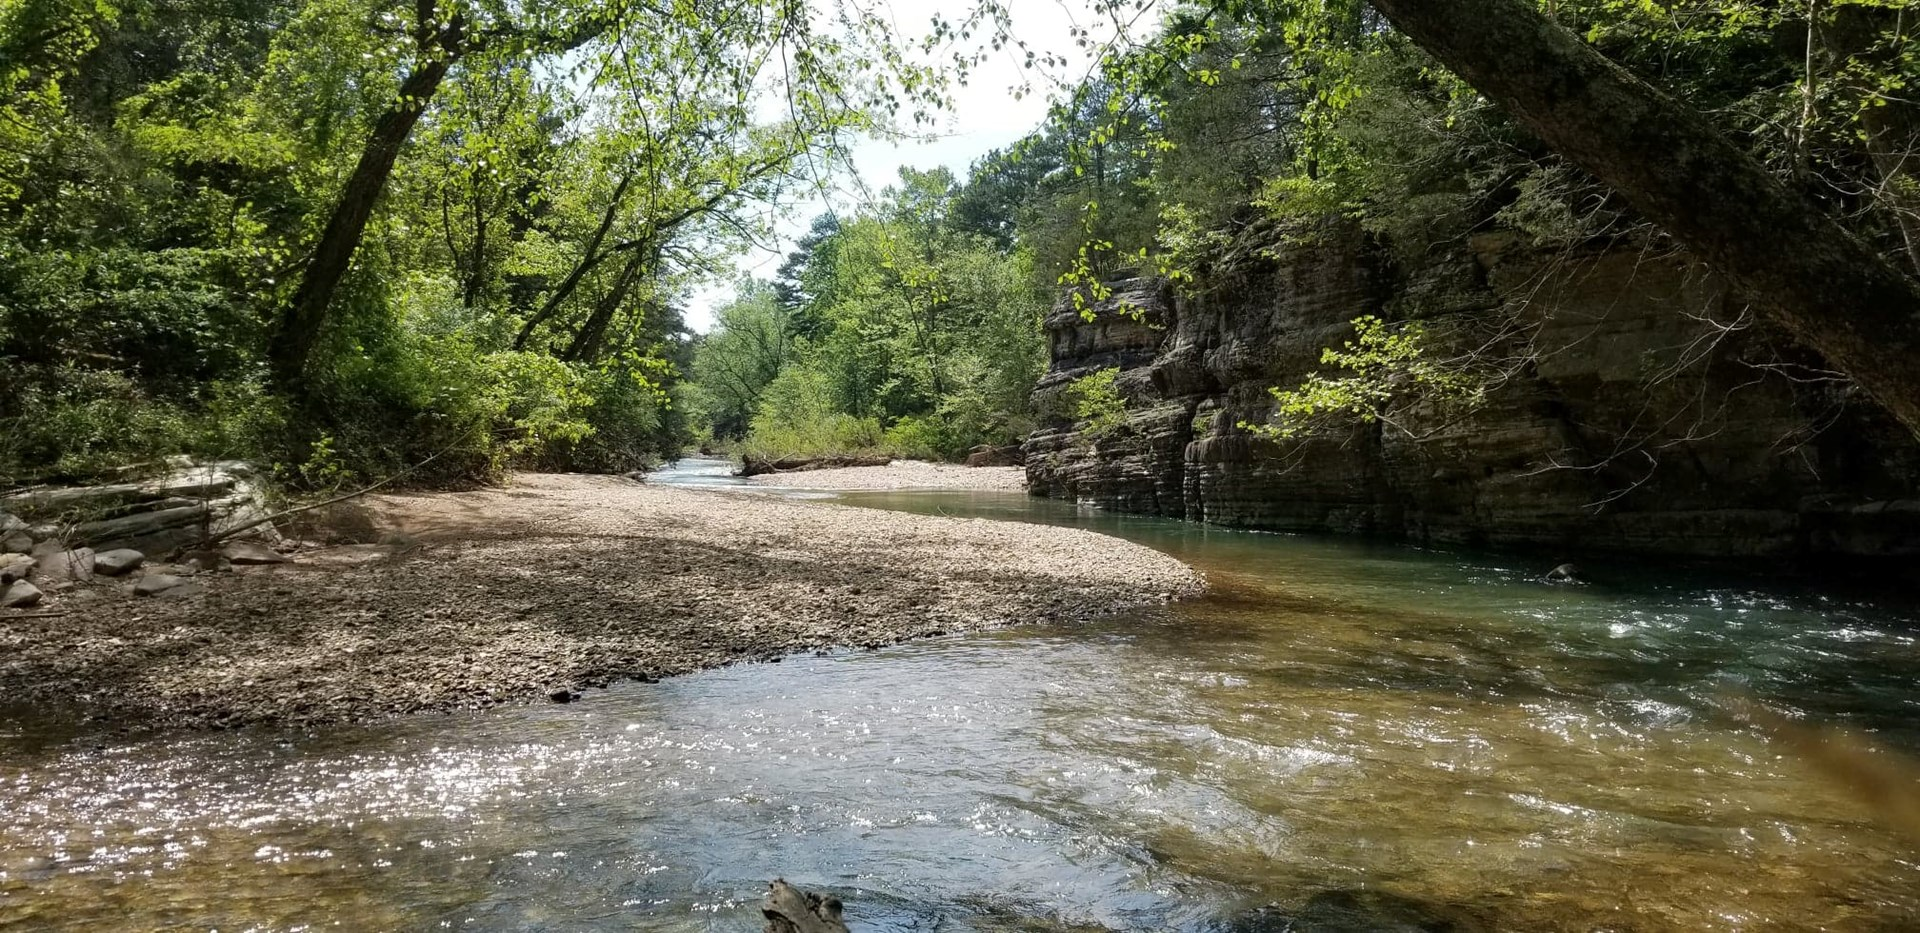 Creek front home & land for sale in Carroll County, Arkansas